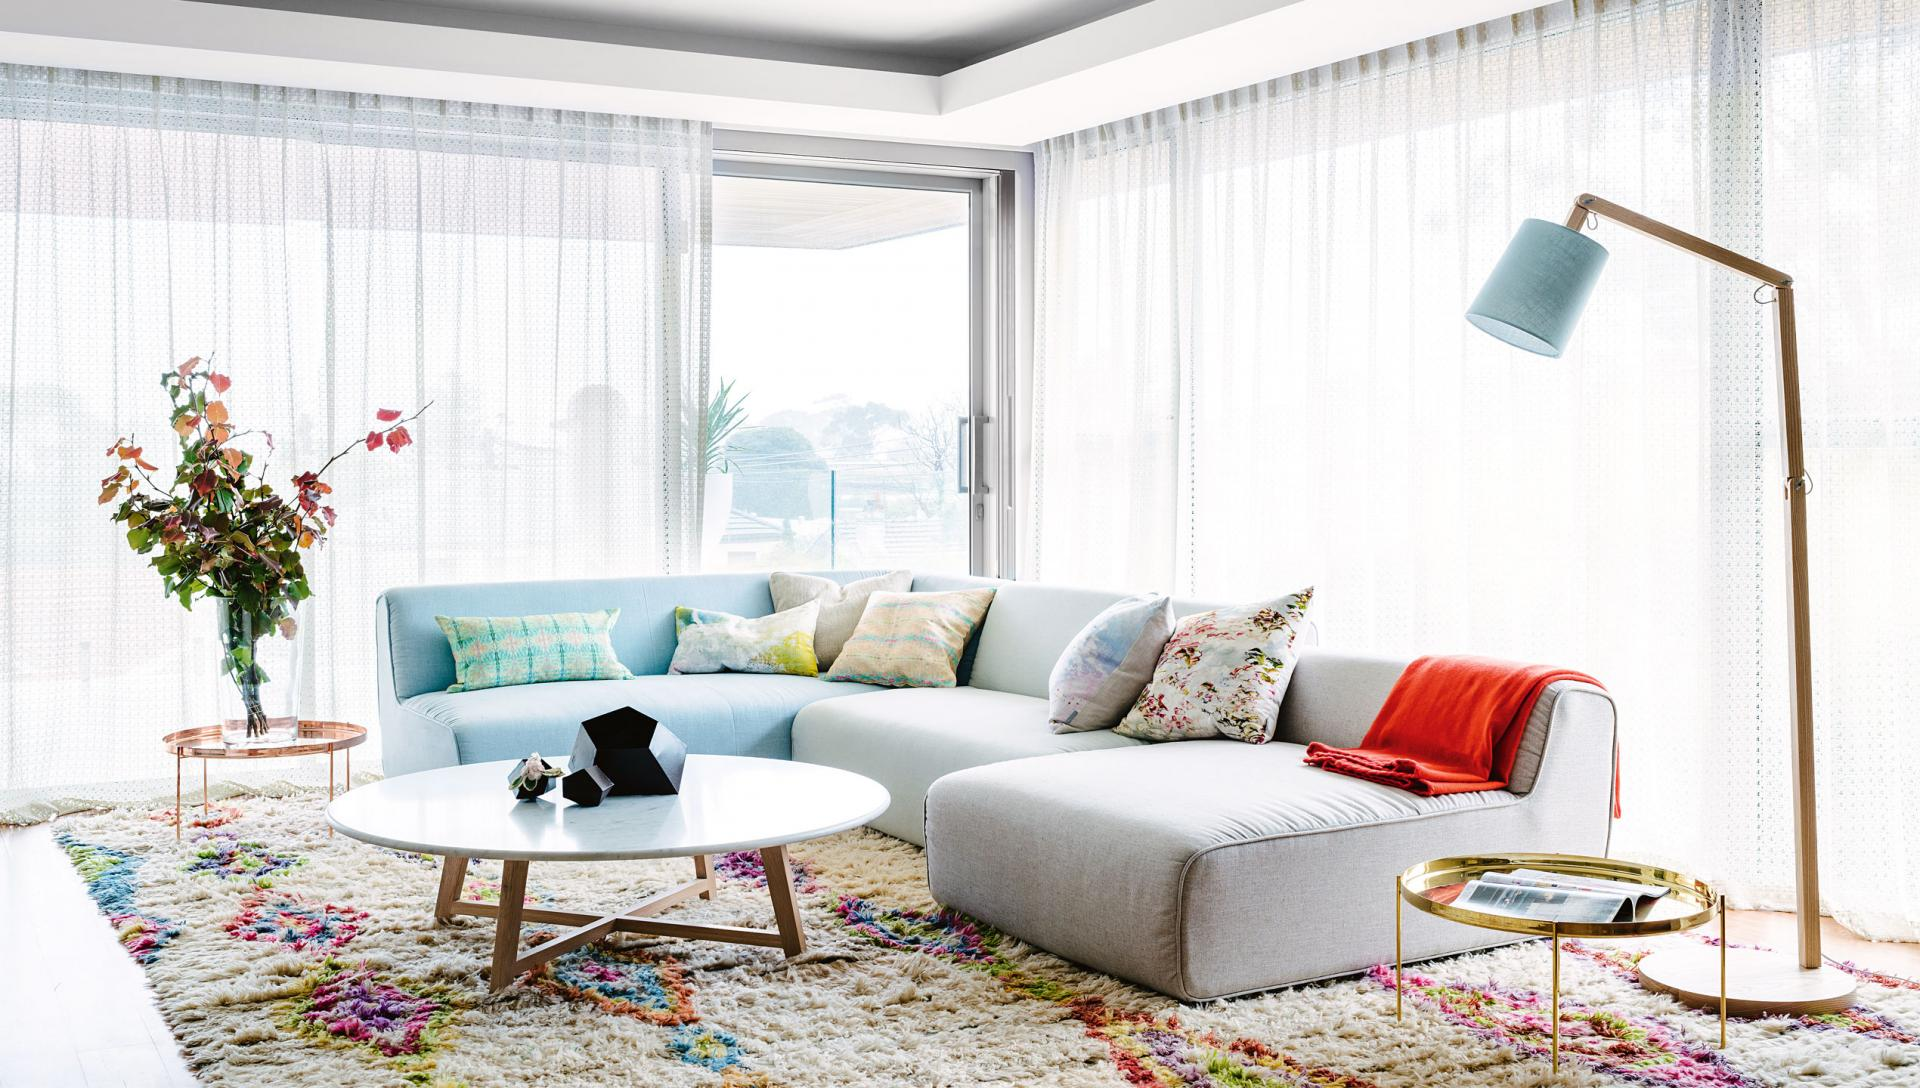 Bright modern style in perth this peaceful home for Fun living room furniture